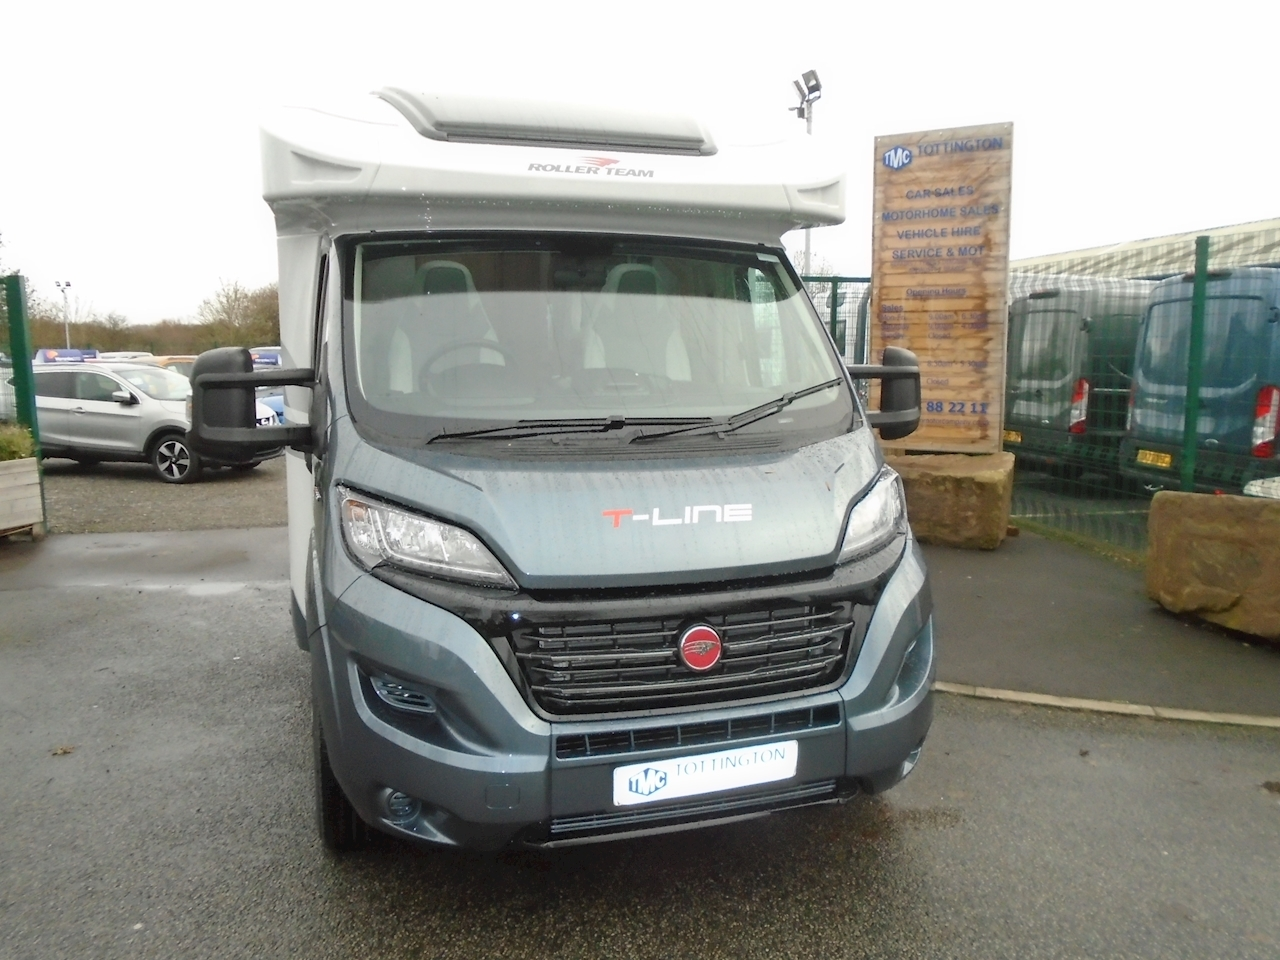 Roller Team T-Line 590 (New 2021 Model) 2.3 Motorhome Manual Diesel